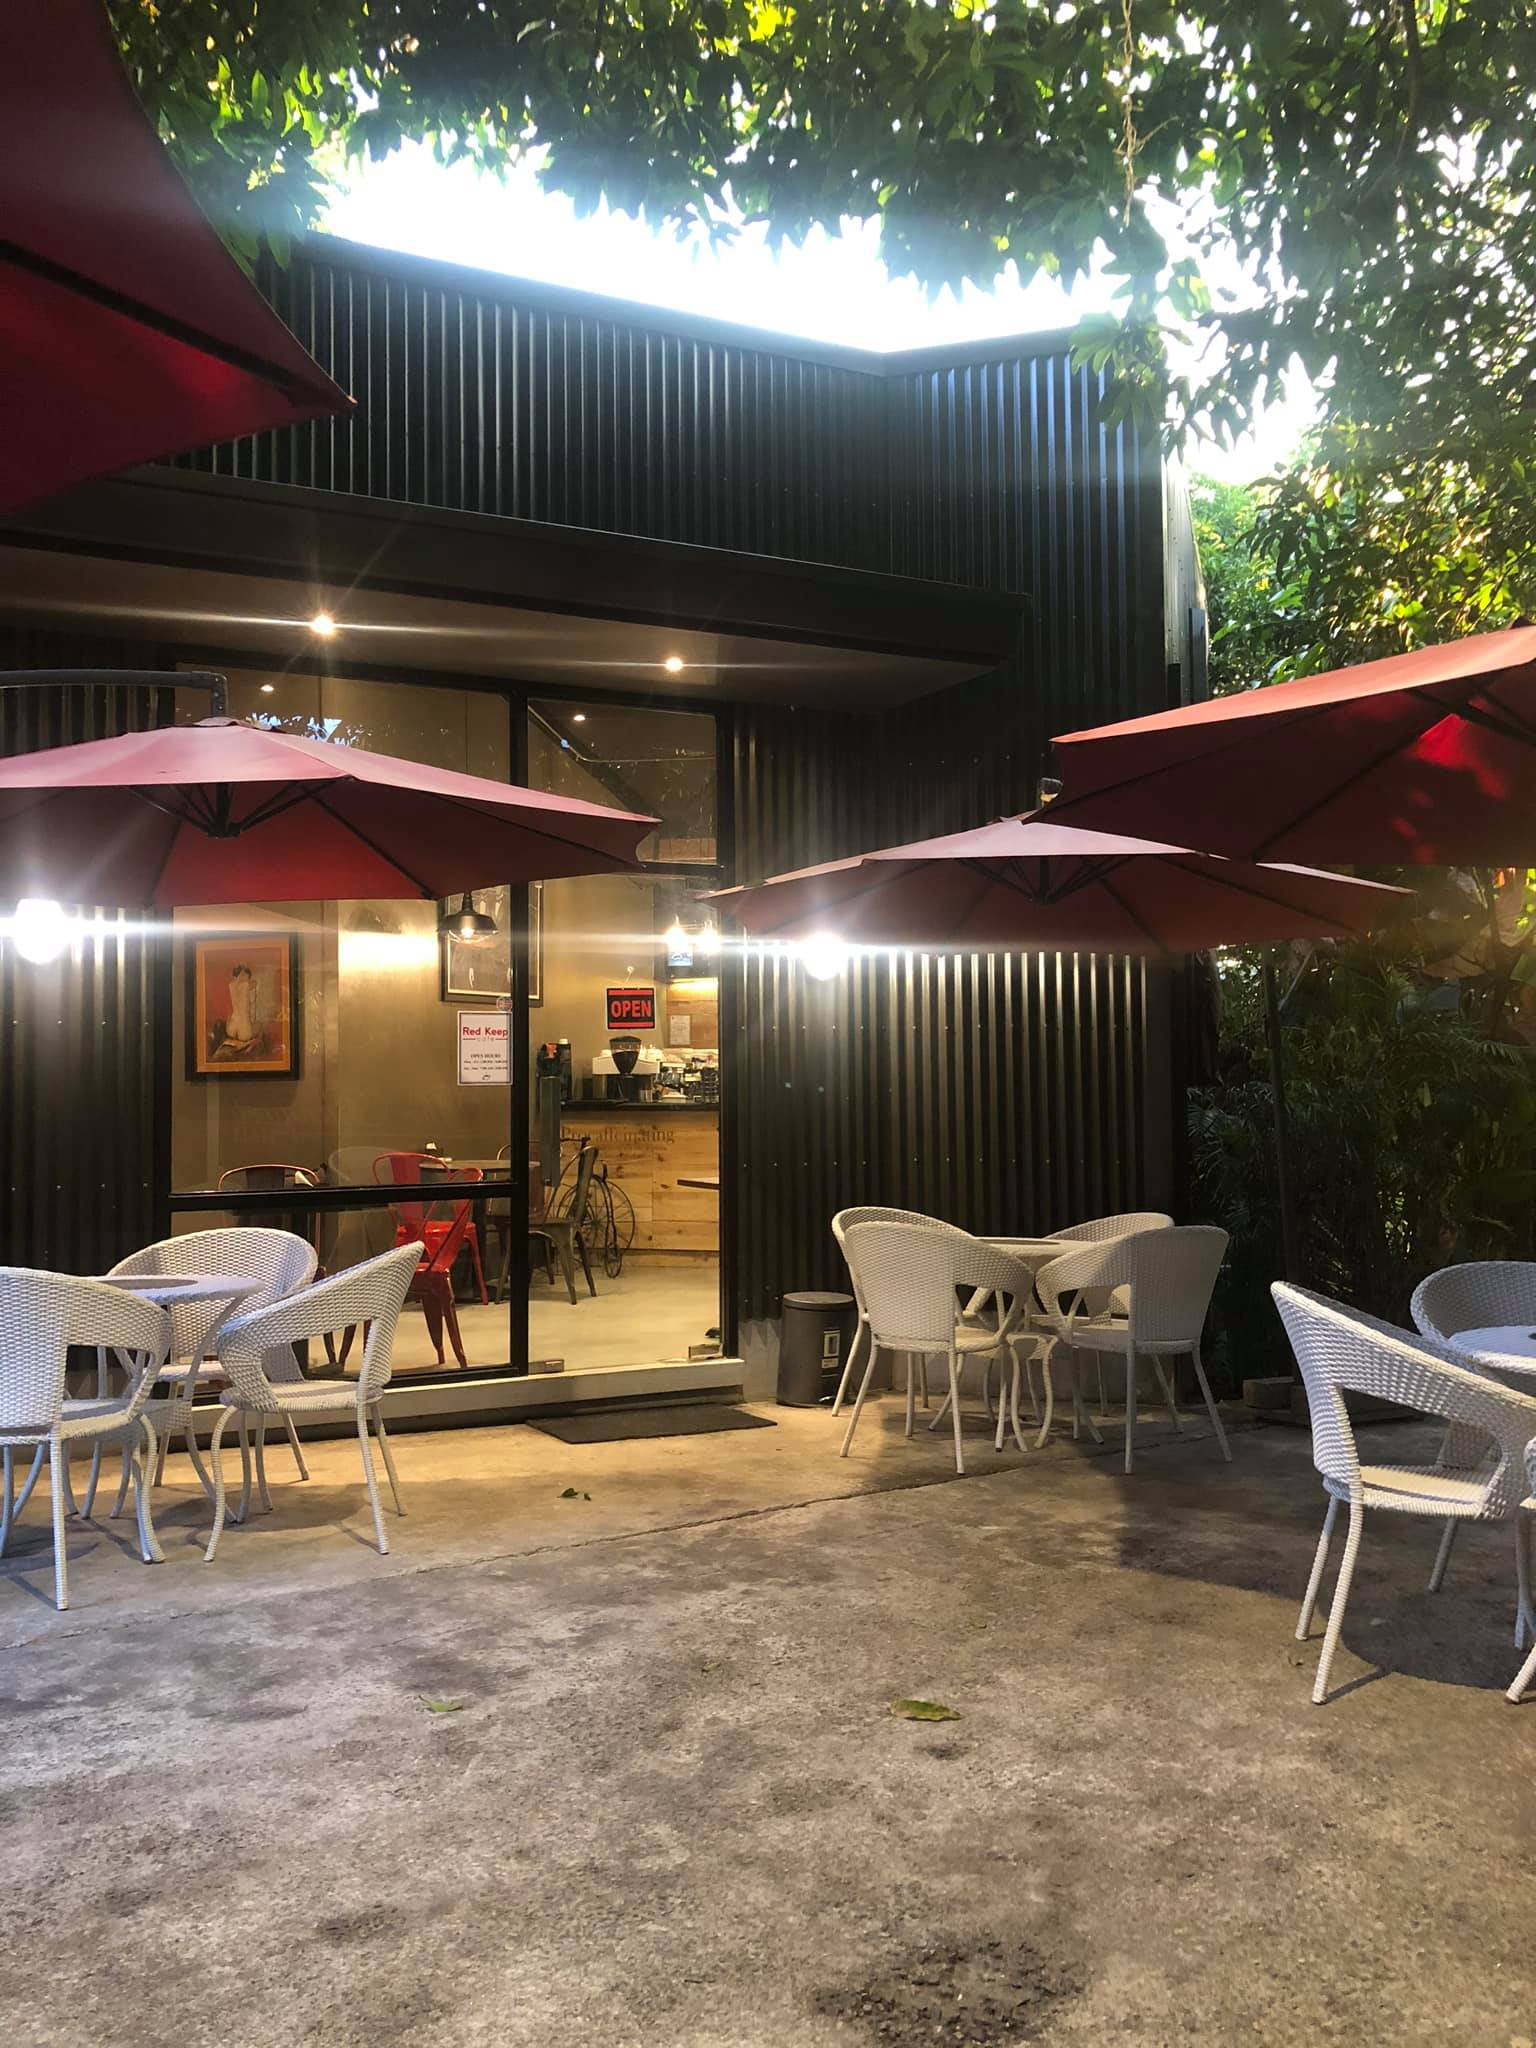 Red Keep Cafe Cainta Exterior